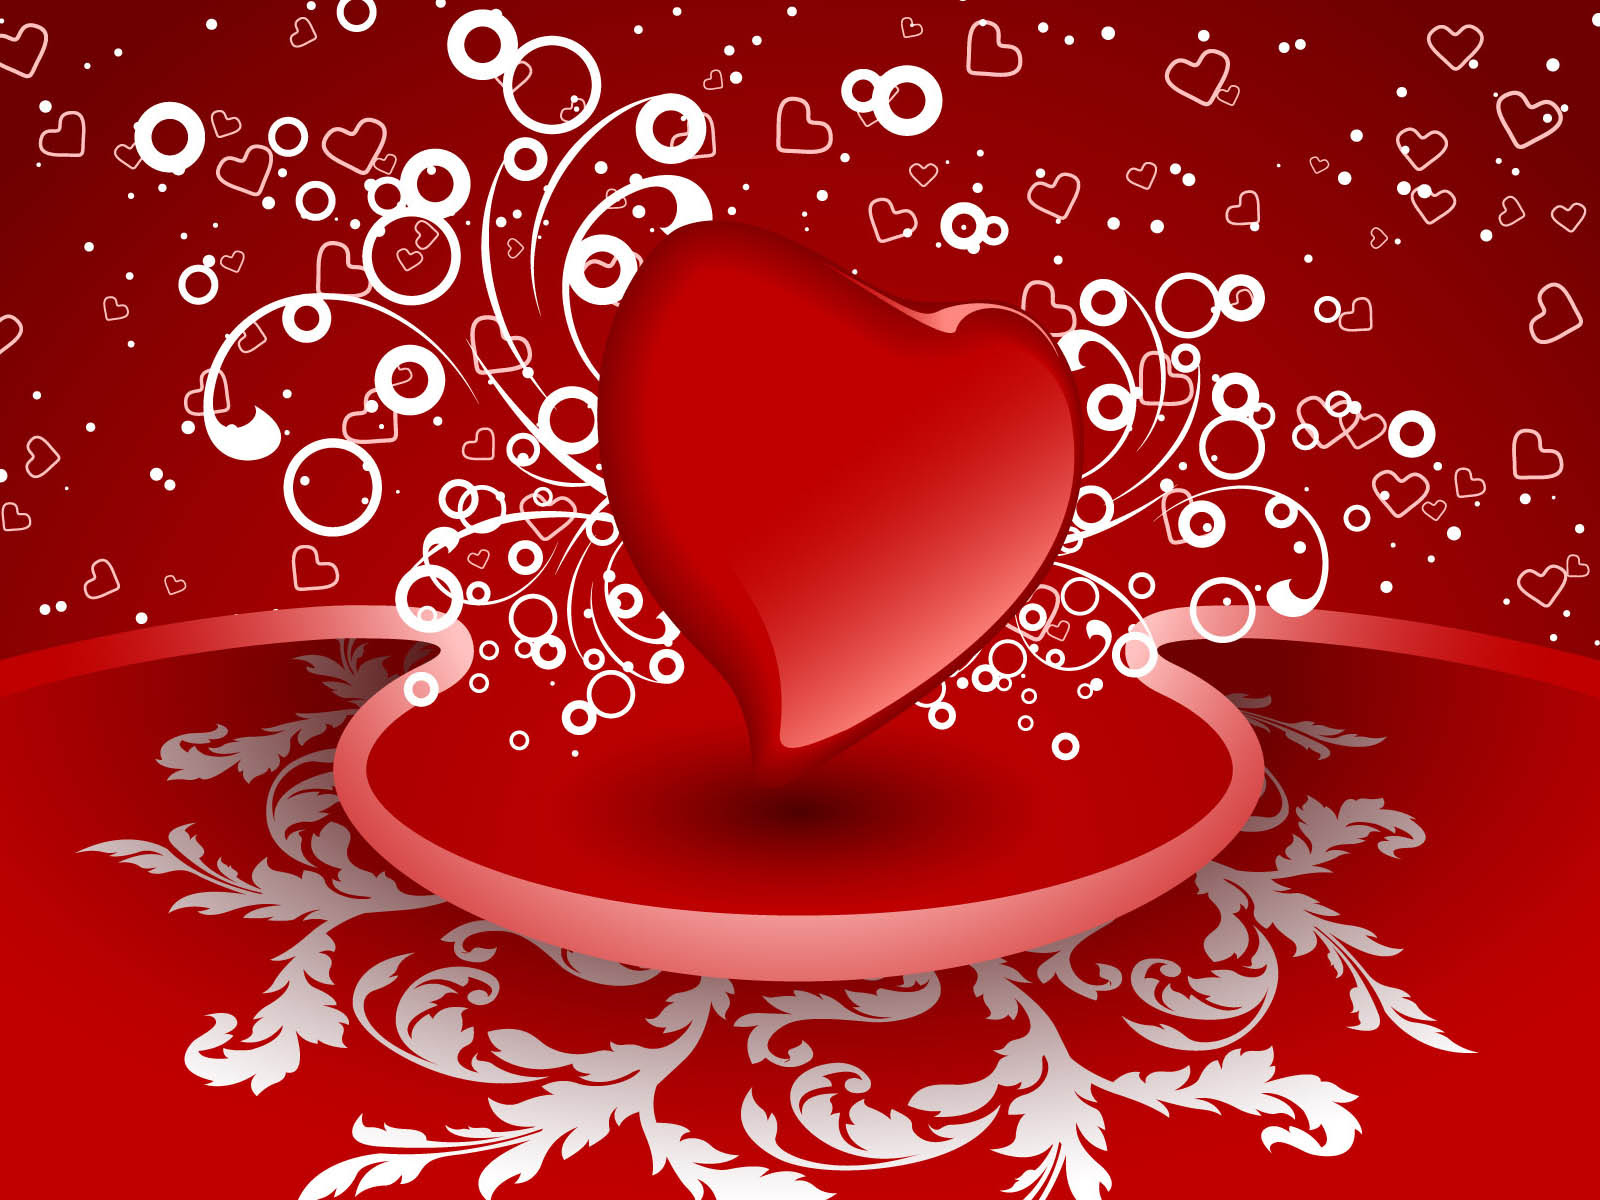 Free Heart Images Love You Download Free Clip Art Free Clip Art On